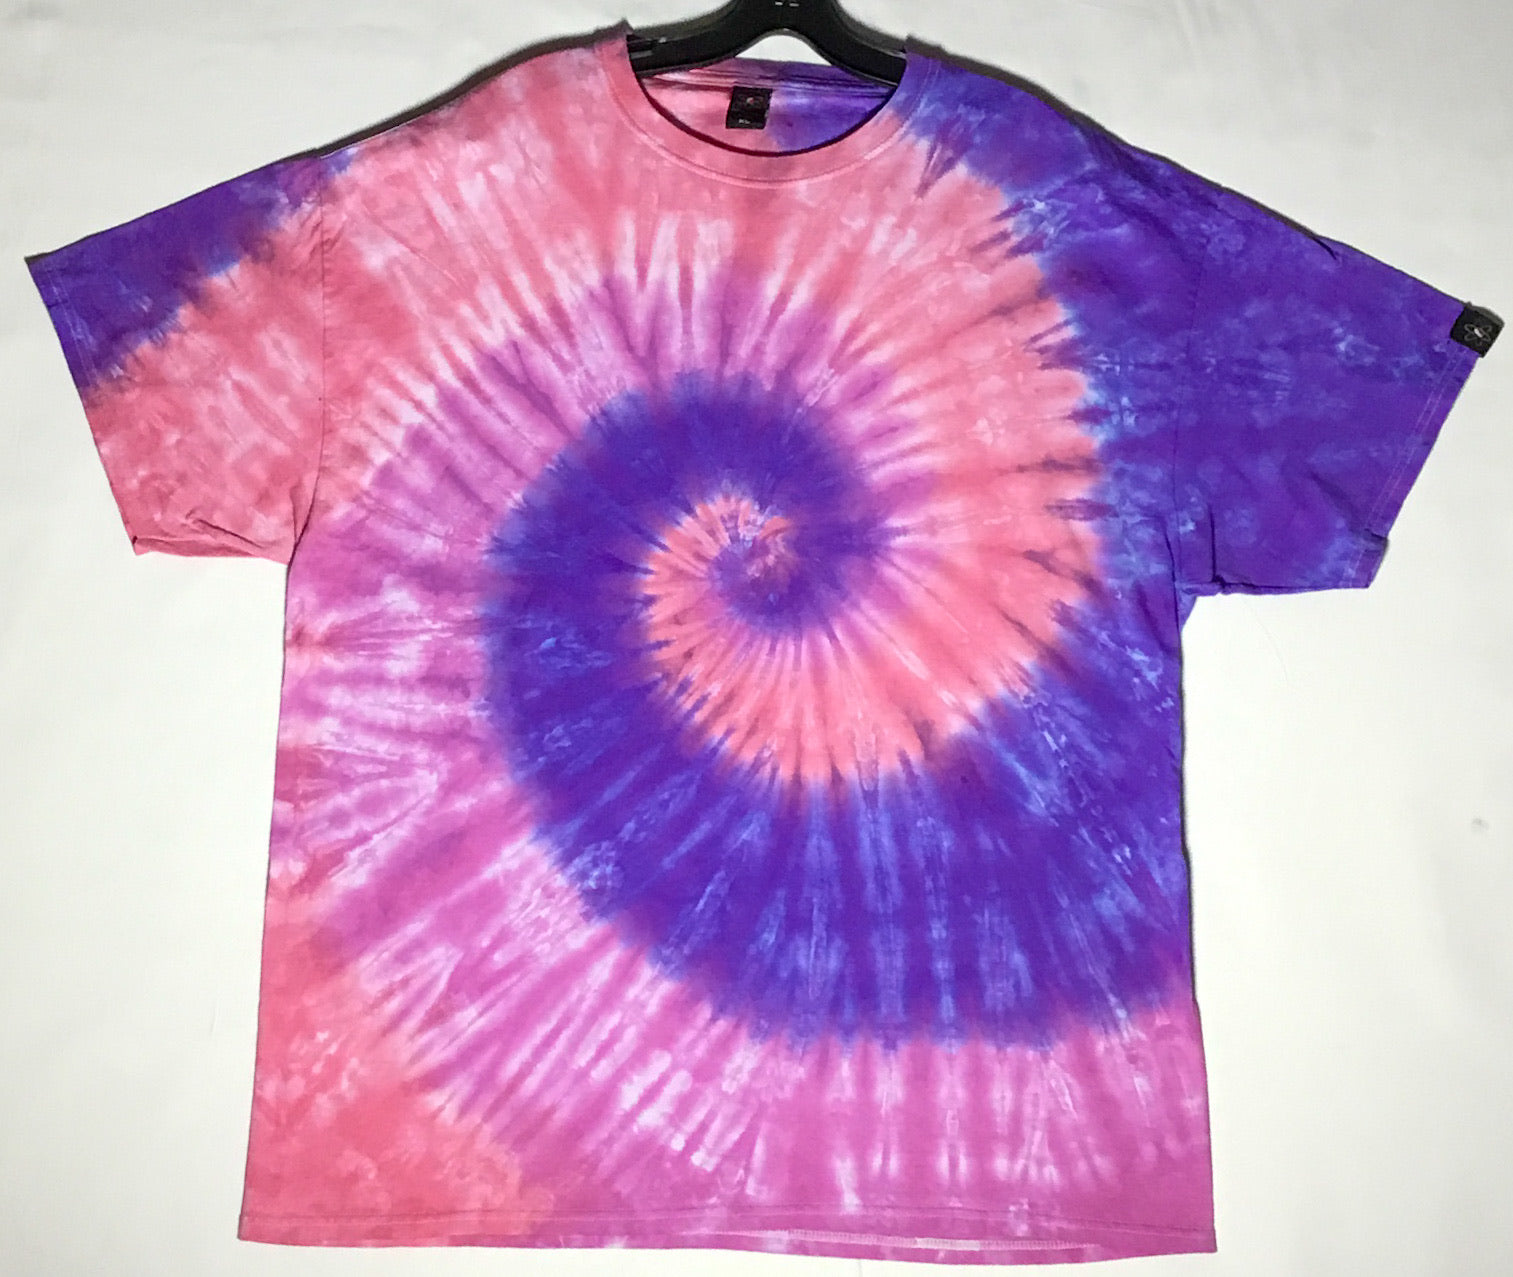 Cotton Candy Pastel Spiral XL